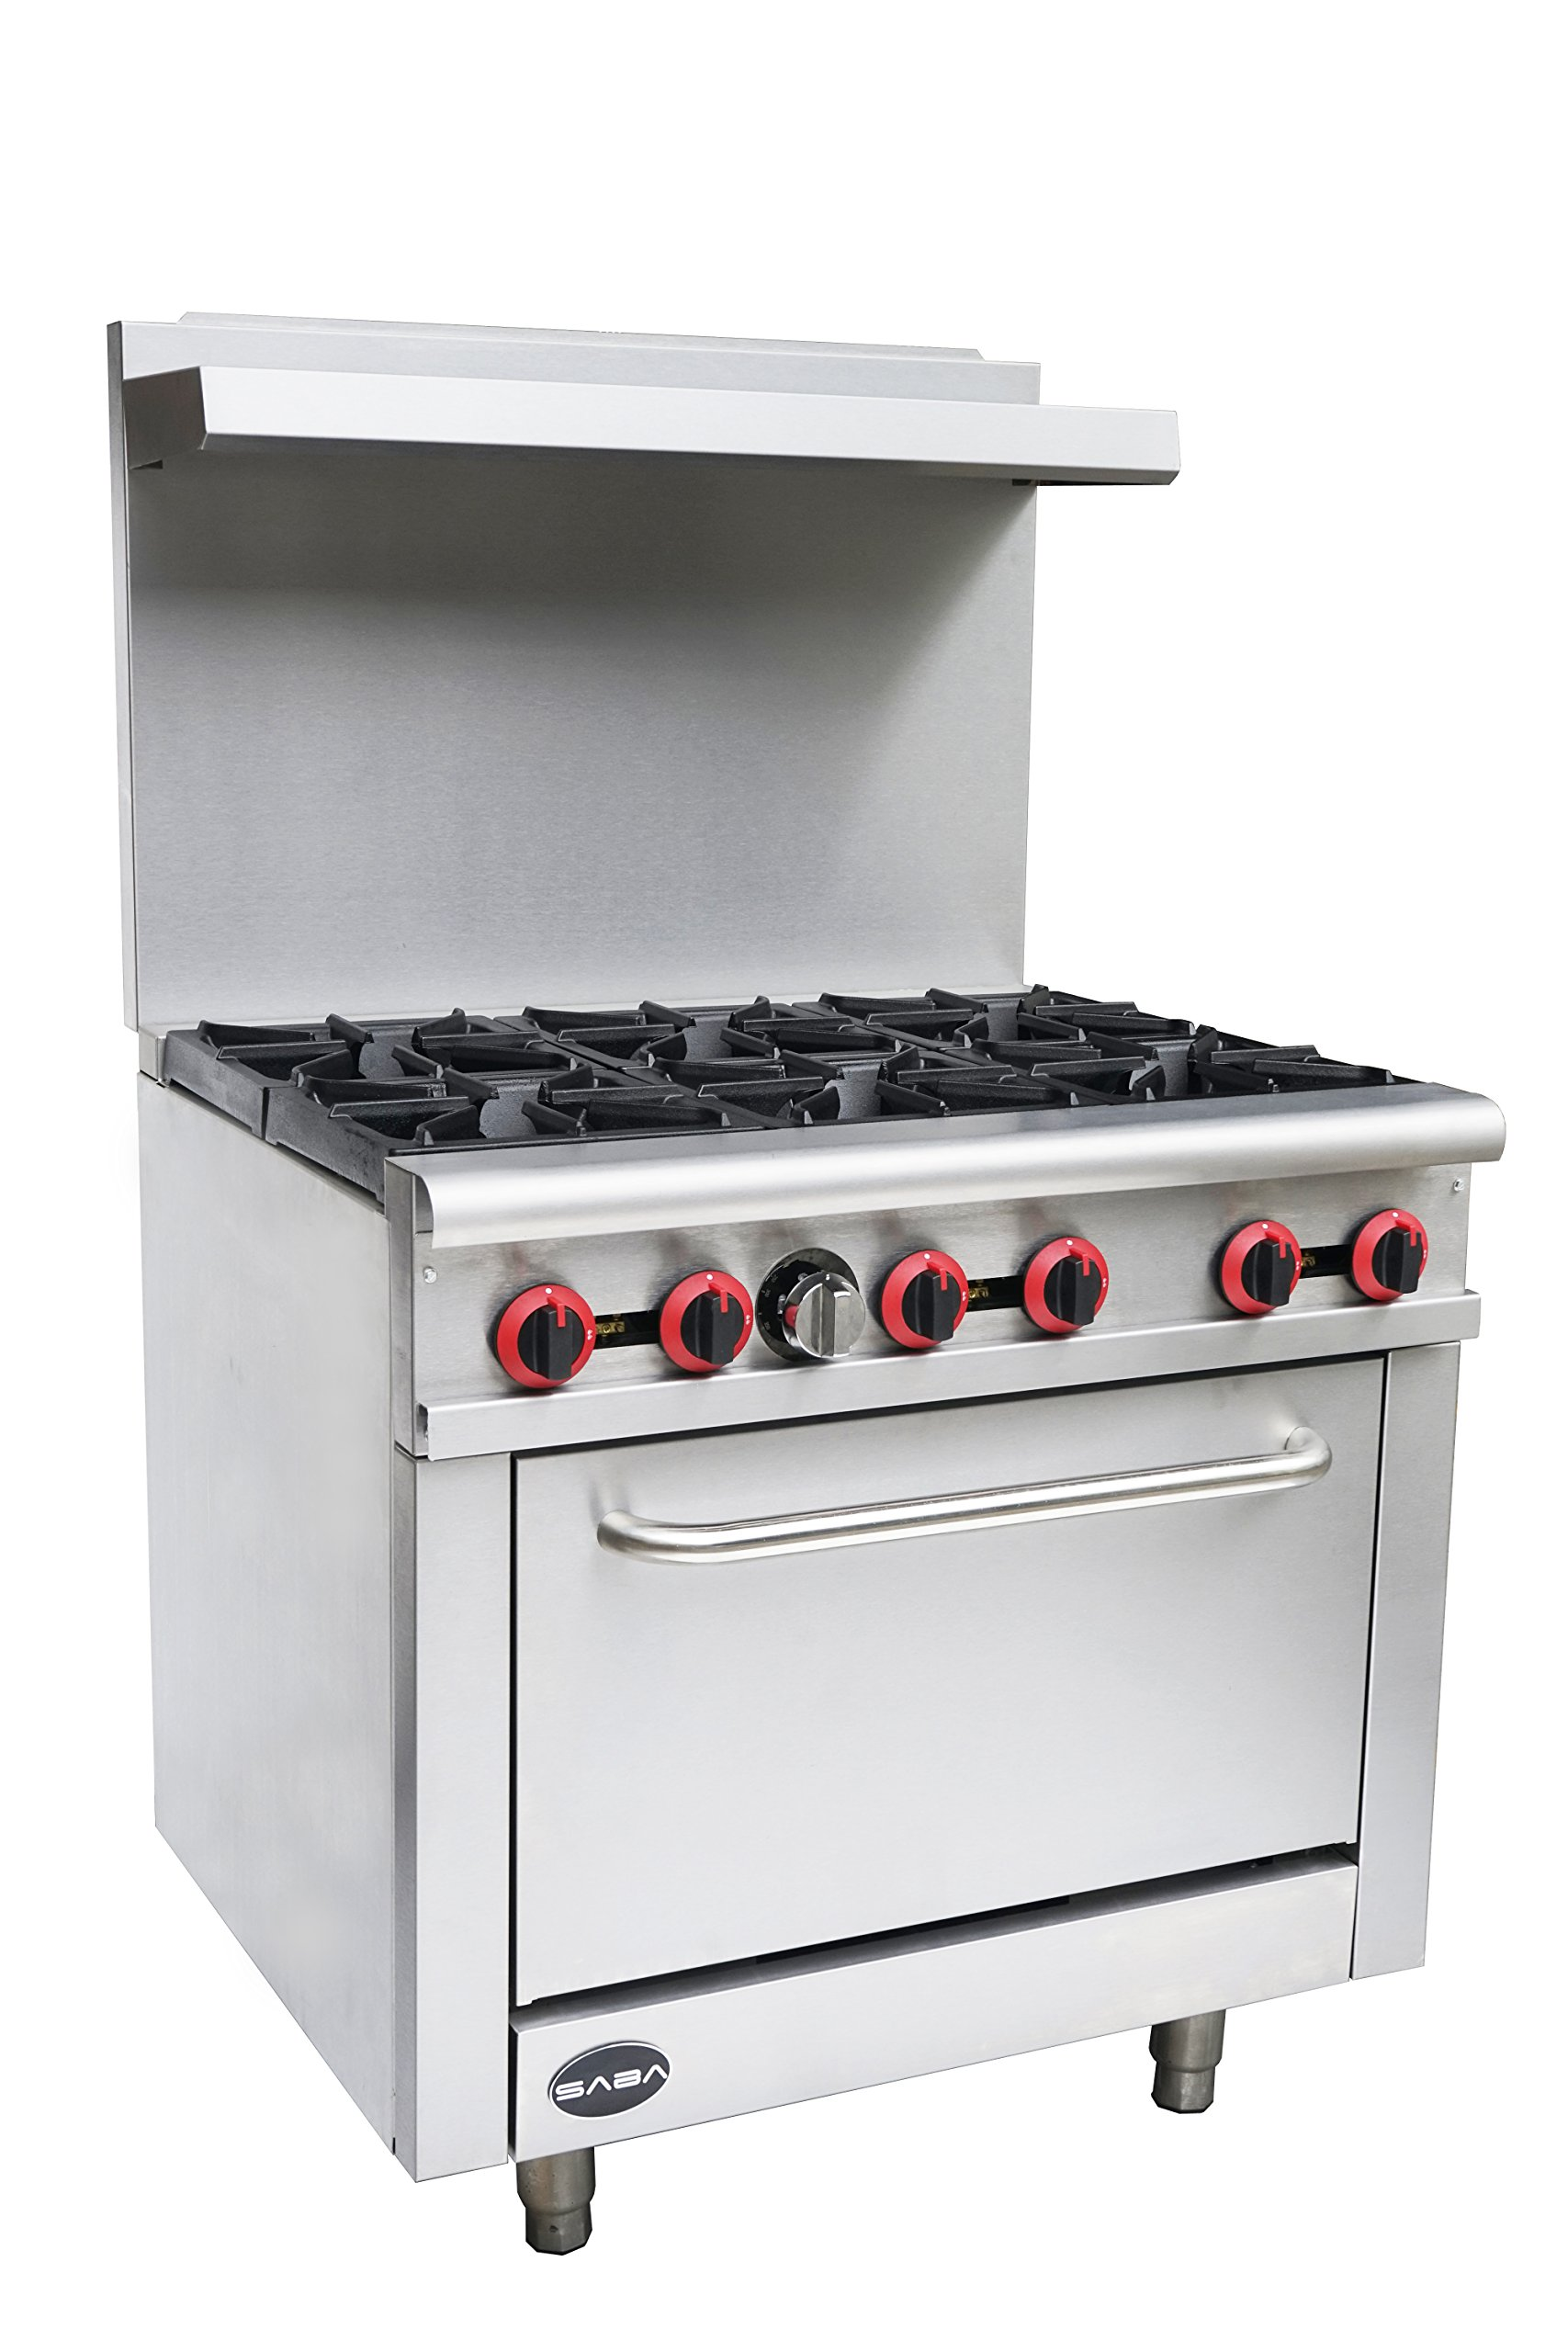 Heavy Duty Commercial 36'' Gas 6 Burner Range with Oven